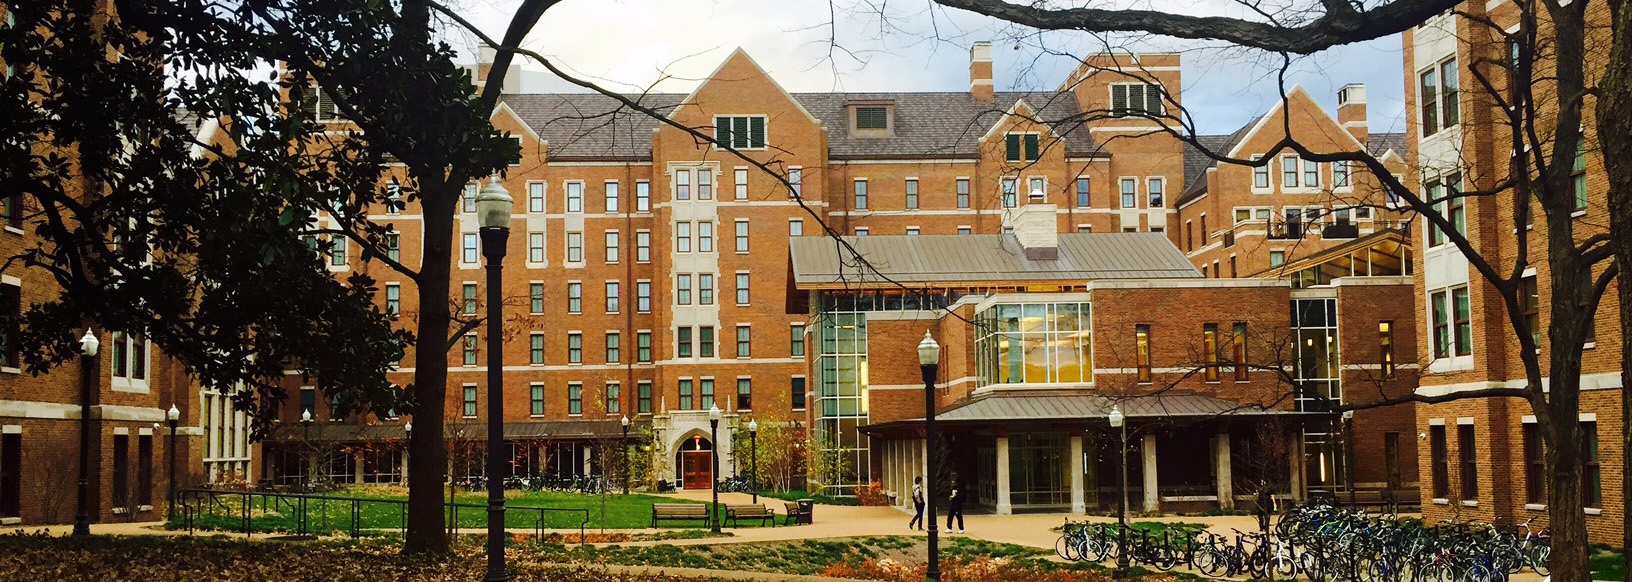 <strong>Conference Services</strong><br />Need a location for your residential summer conference or camp? Look no further than at Vanderbilt University to provide you with your every need.